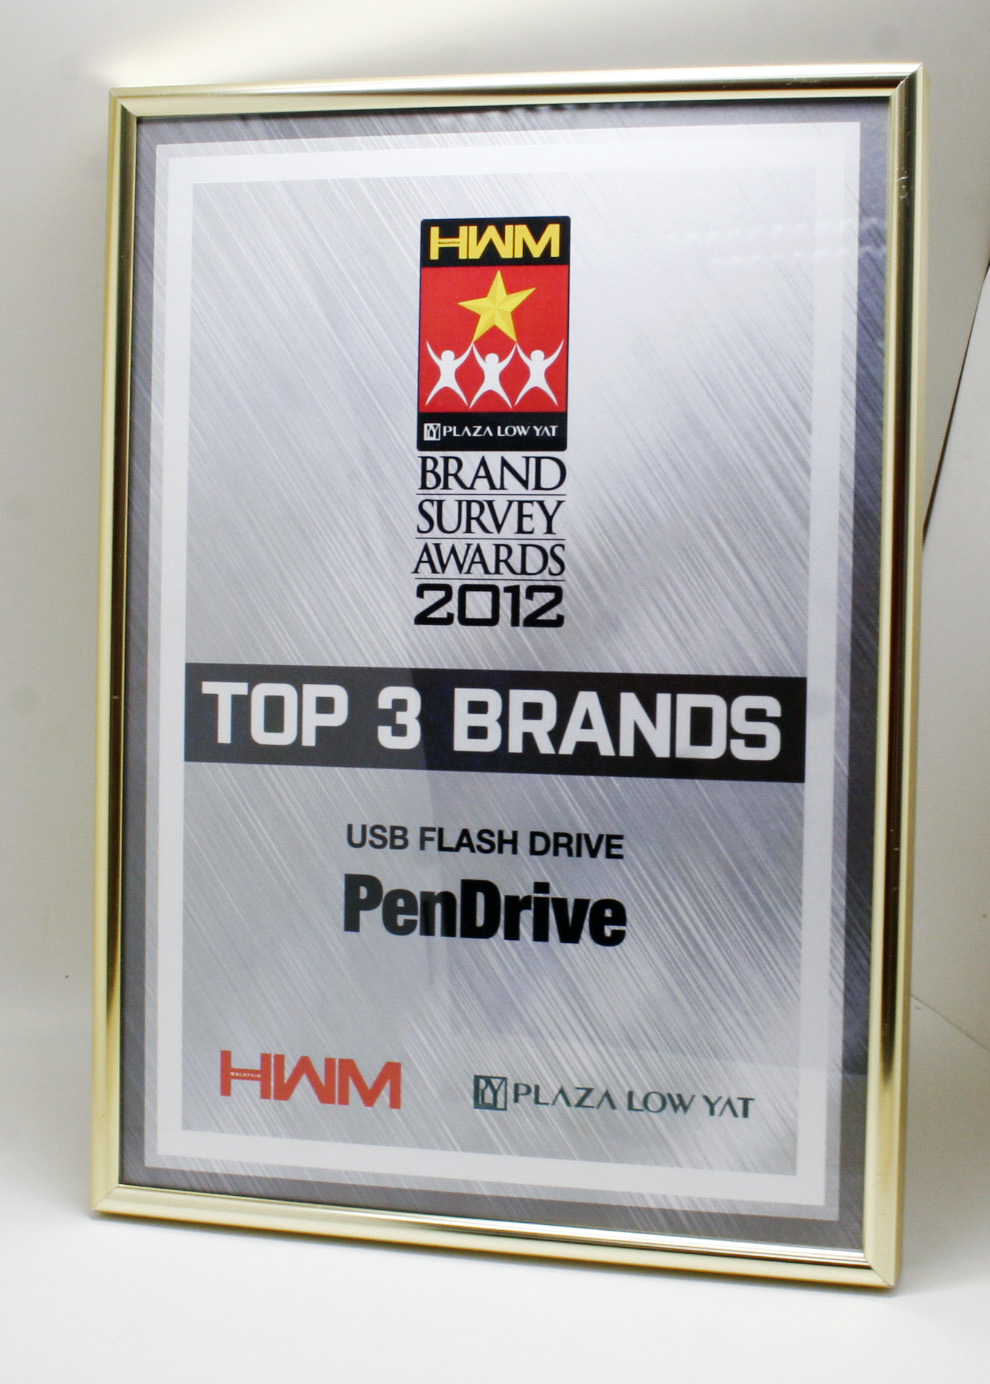 PenDrive won Top 3 Brands from HWM Malaysia